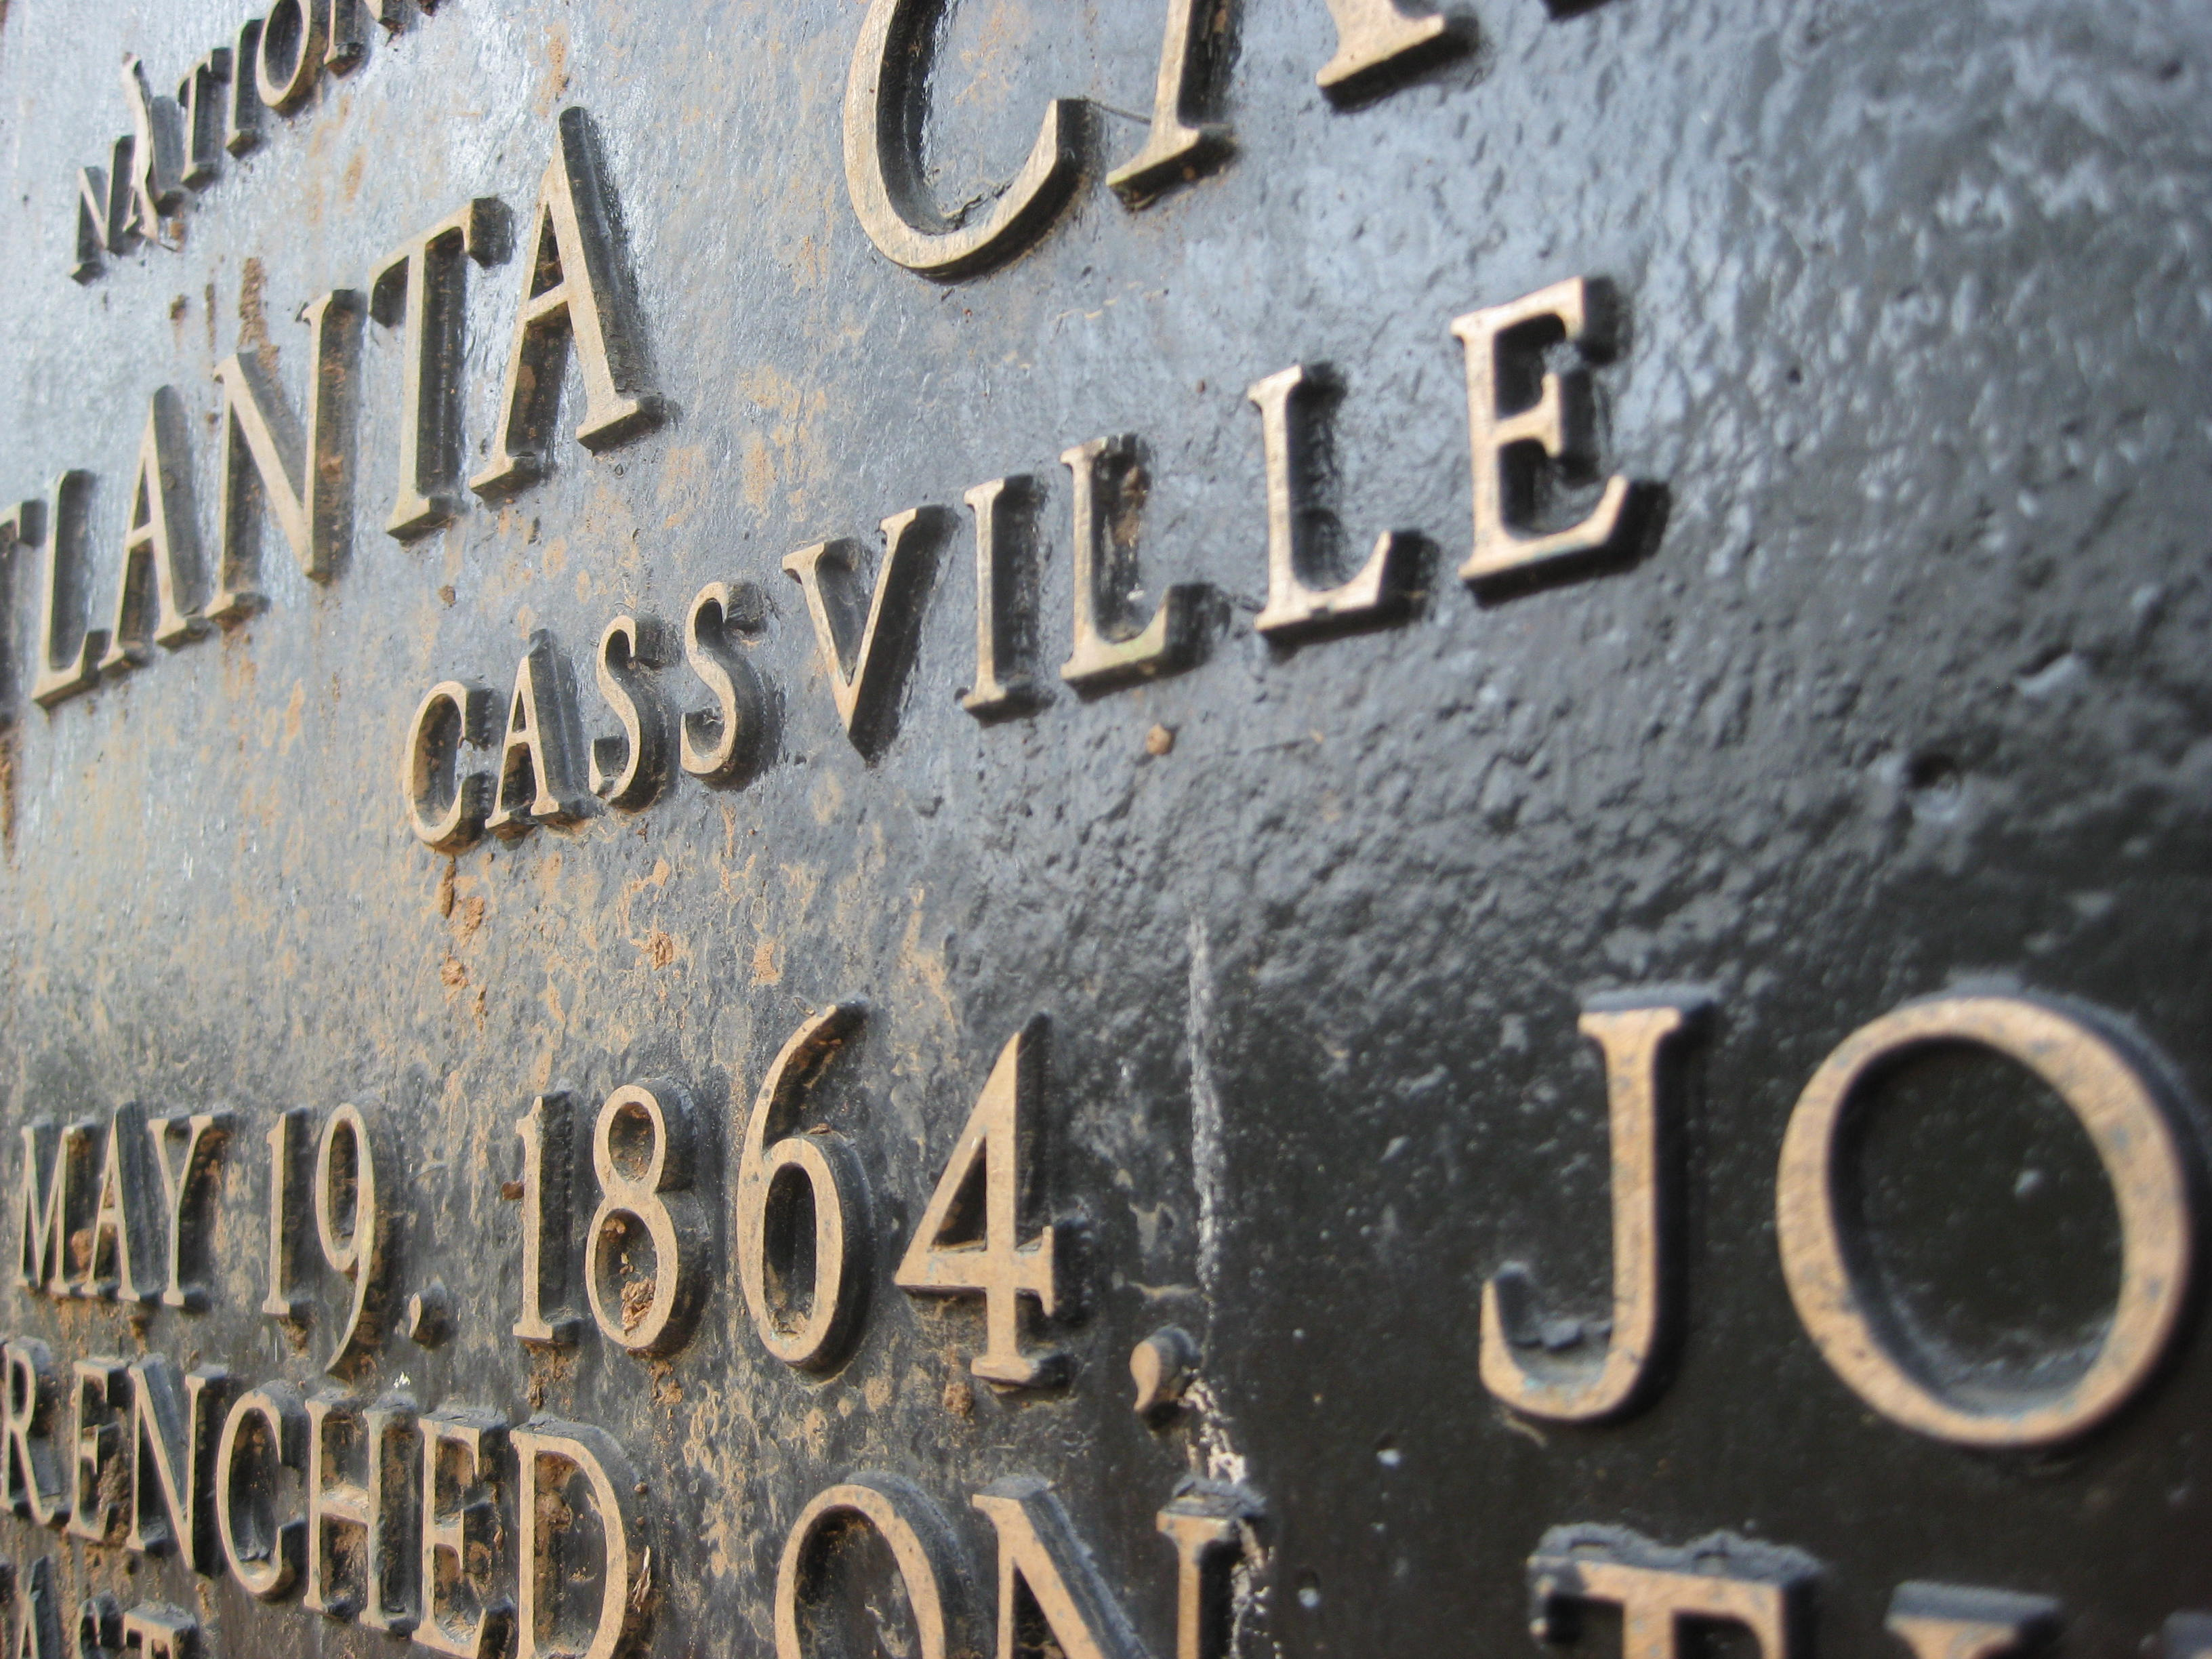 It's always been about you – Cassville